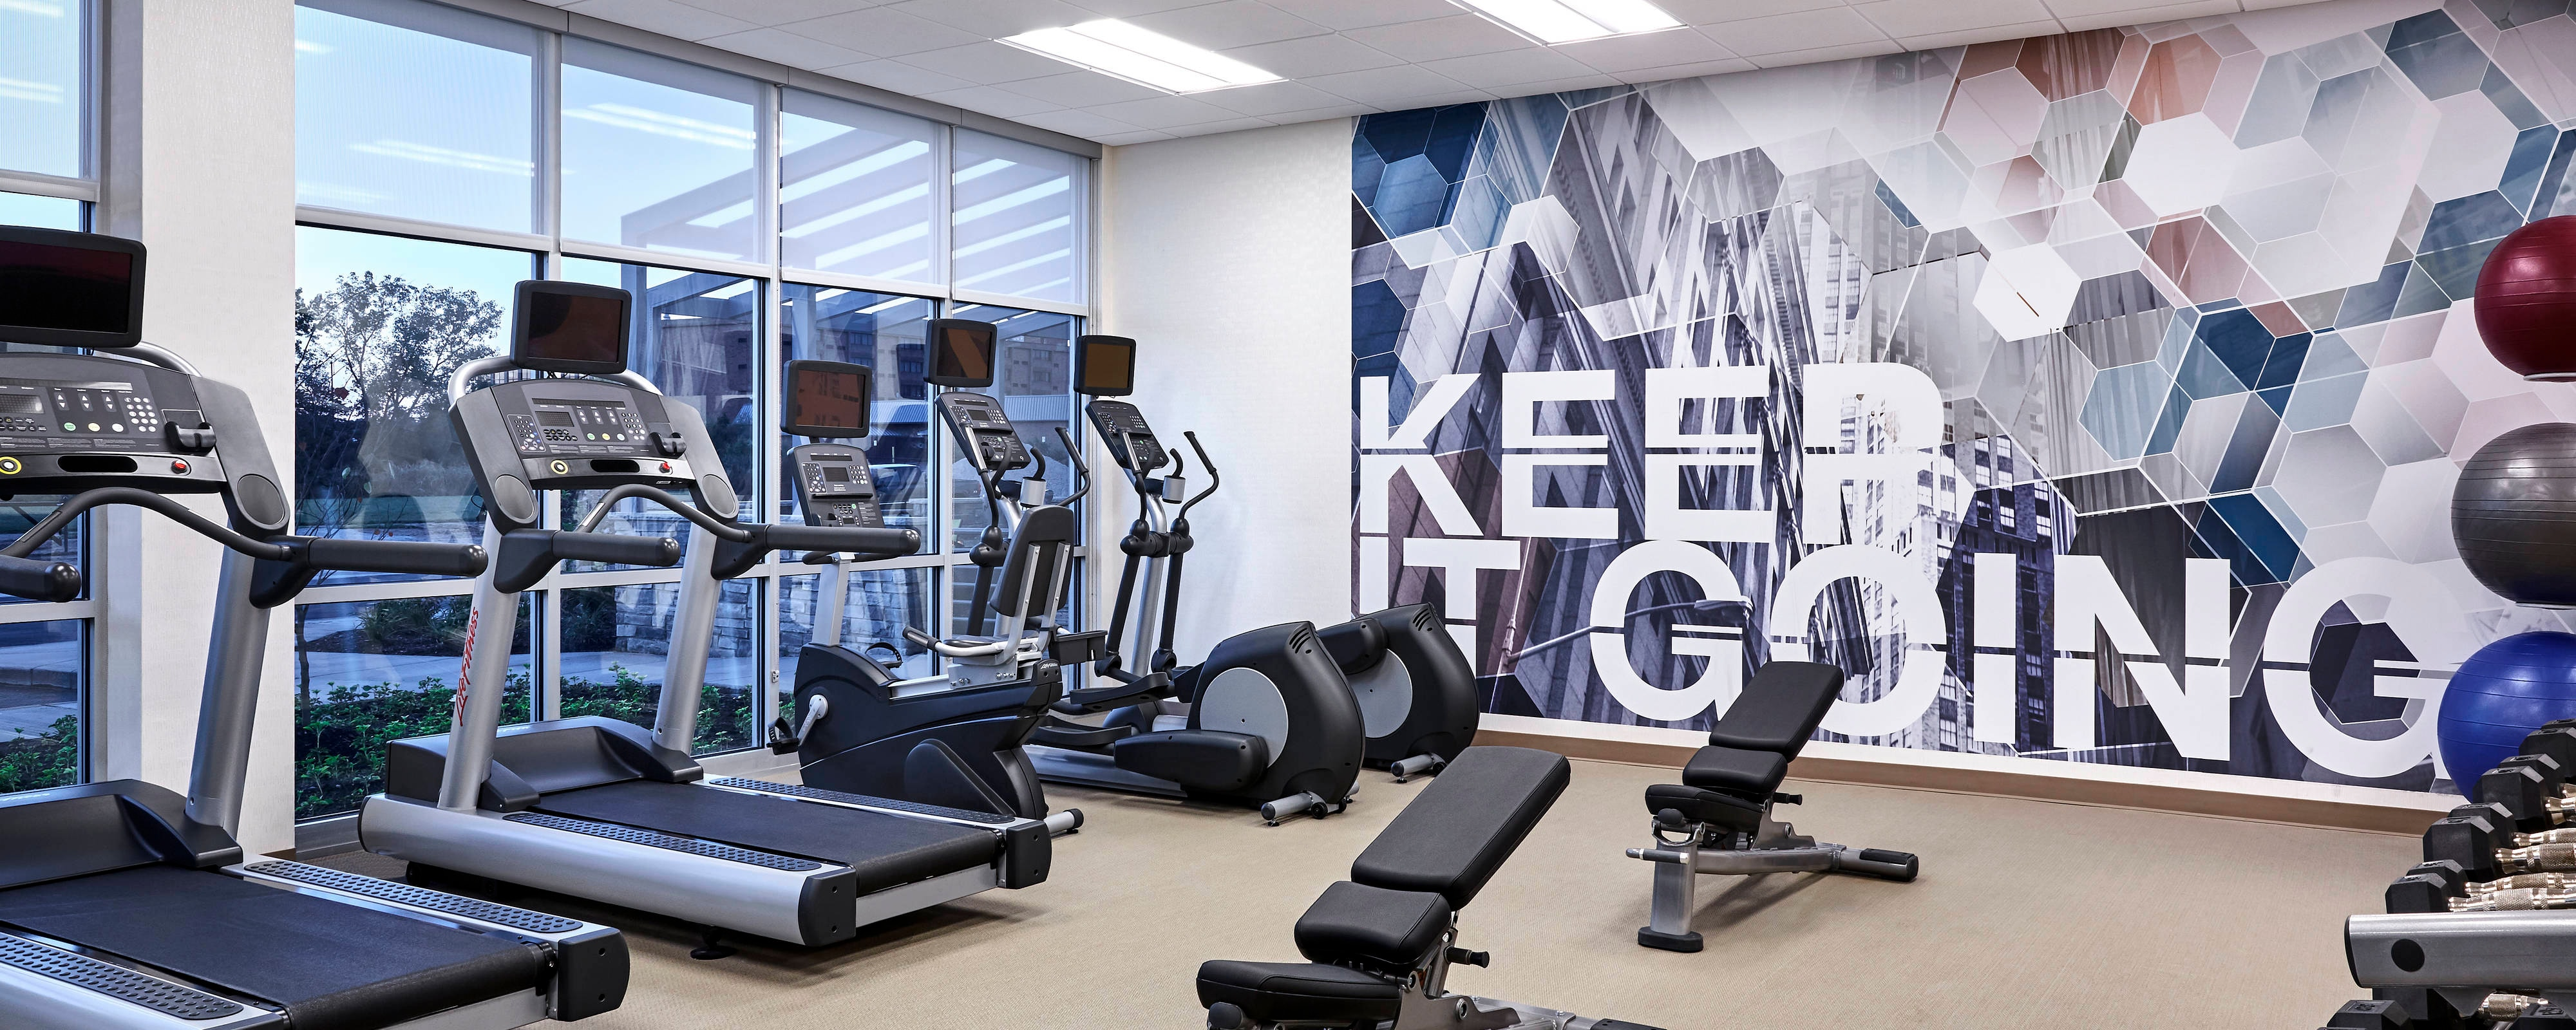 SpringHill Suites Fitness U0026 Recreation